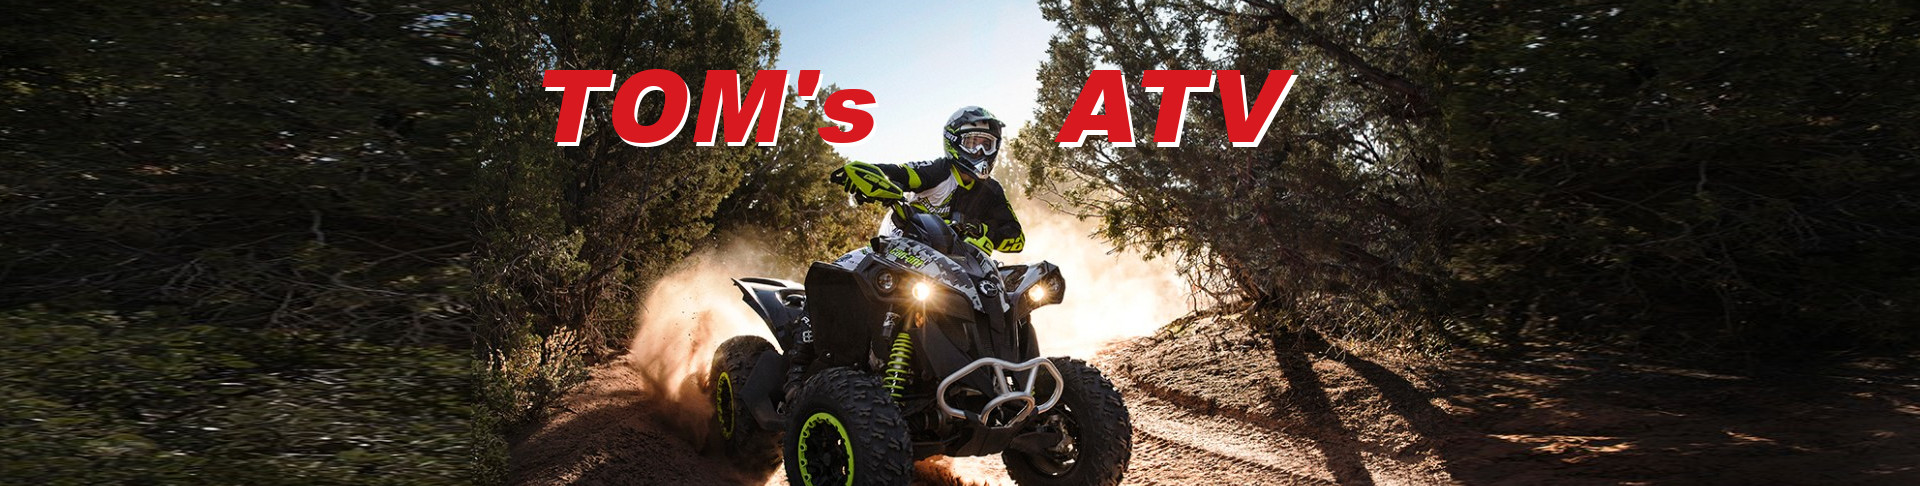 Tom's can-am ATV